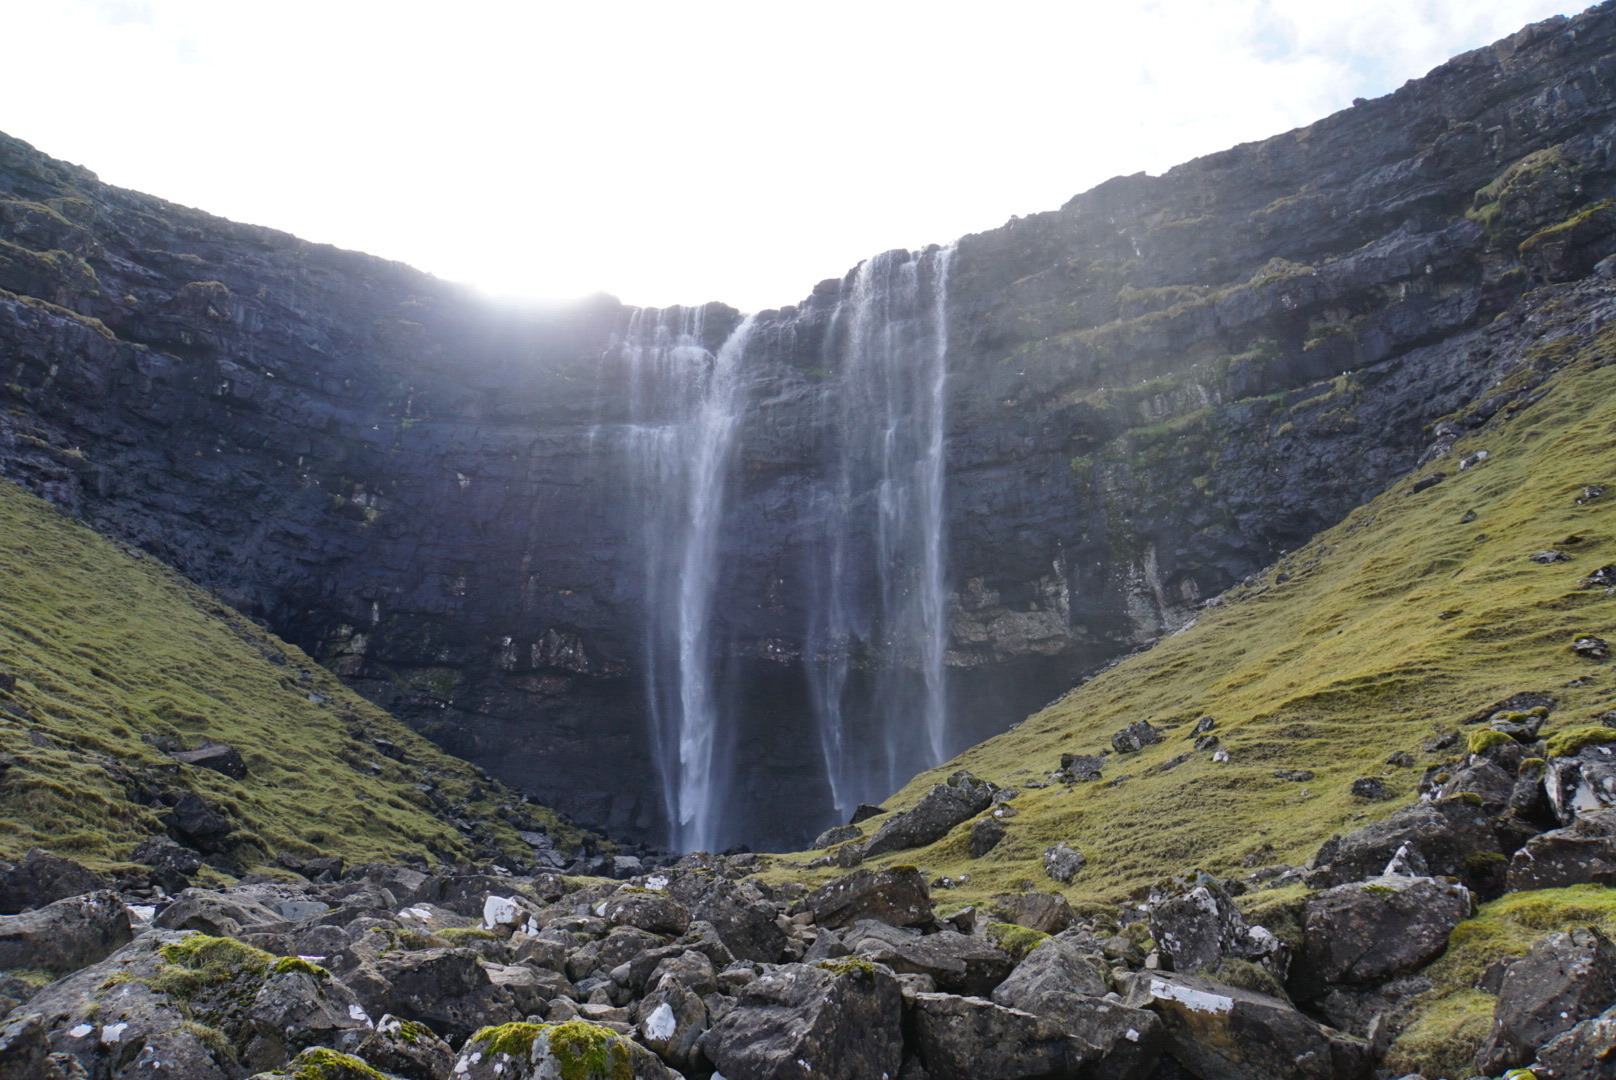 A view on the second tier, forward is behind the waterfall